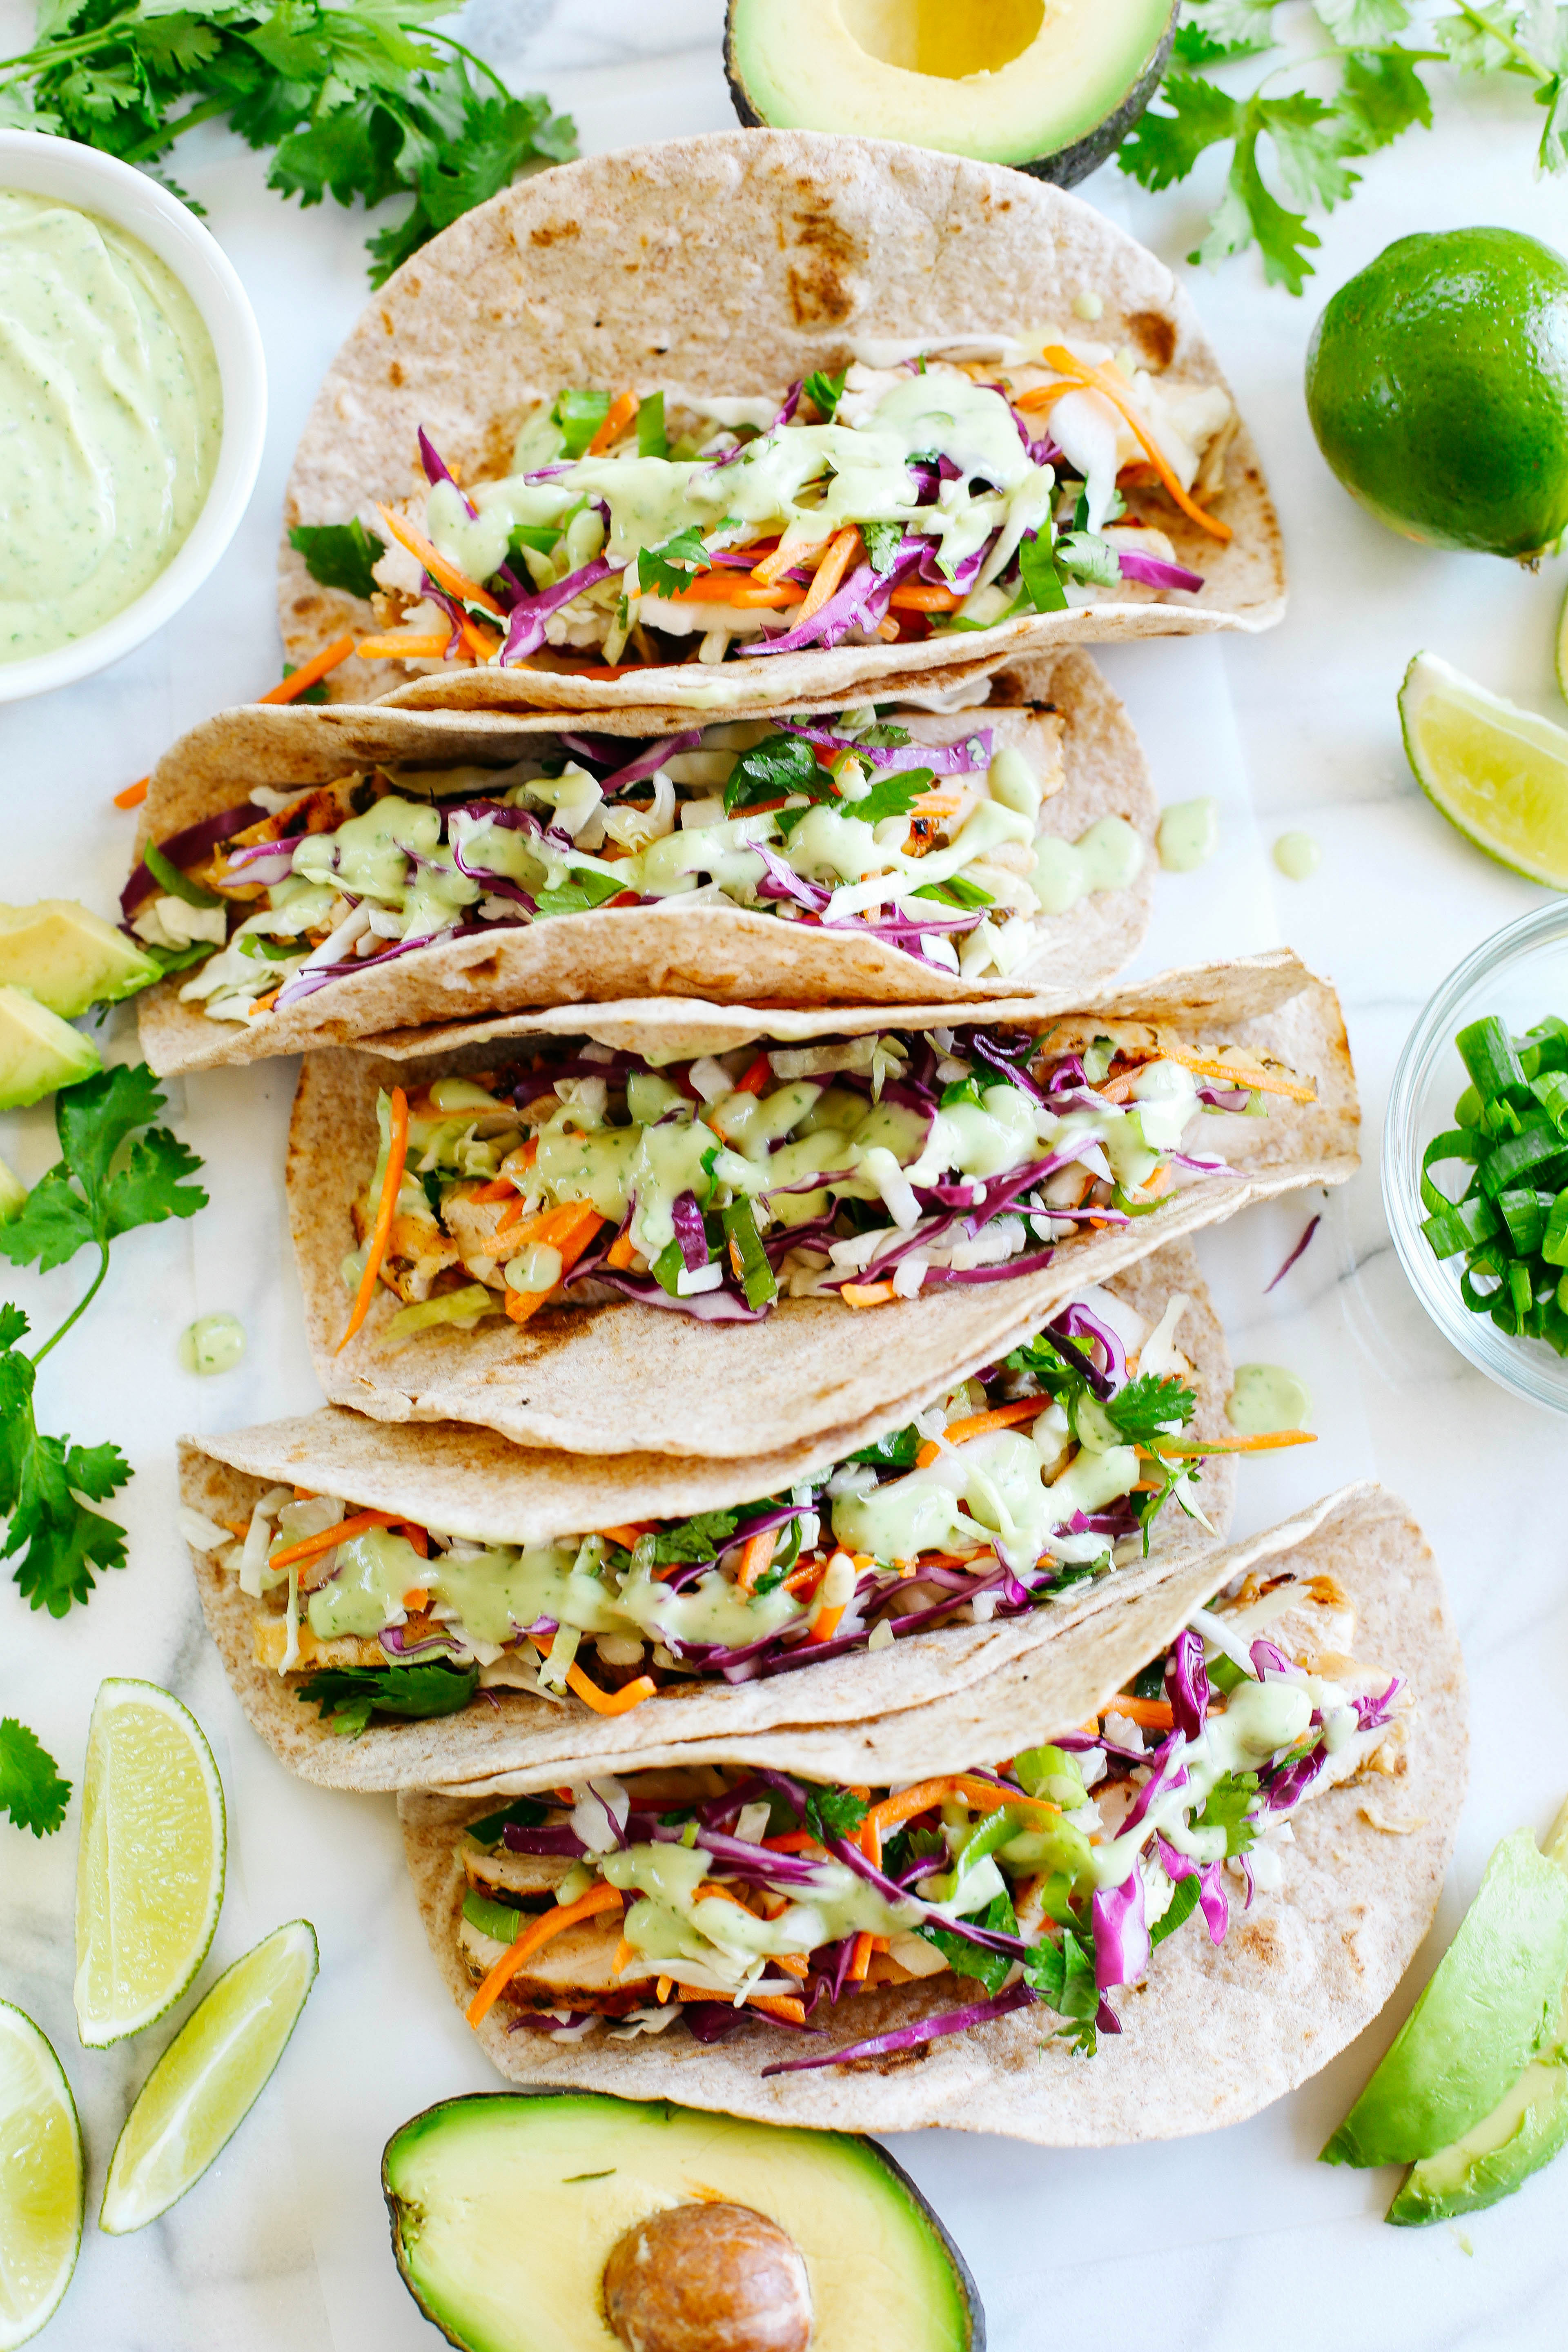 These Cilantro Lime Chicken Tacos with tangy coleslaw and avocado crema are simple, fresh and delicious making this the perfect EASY summer recipe!